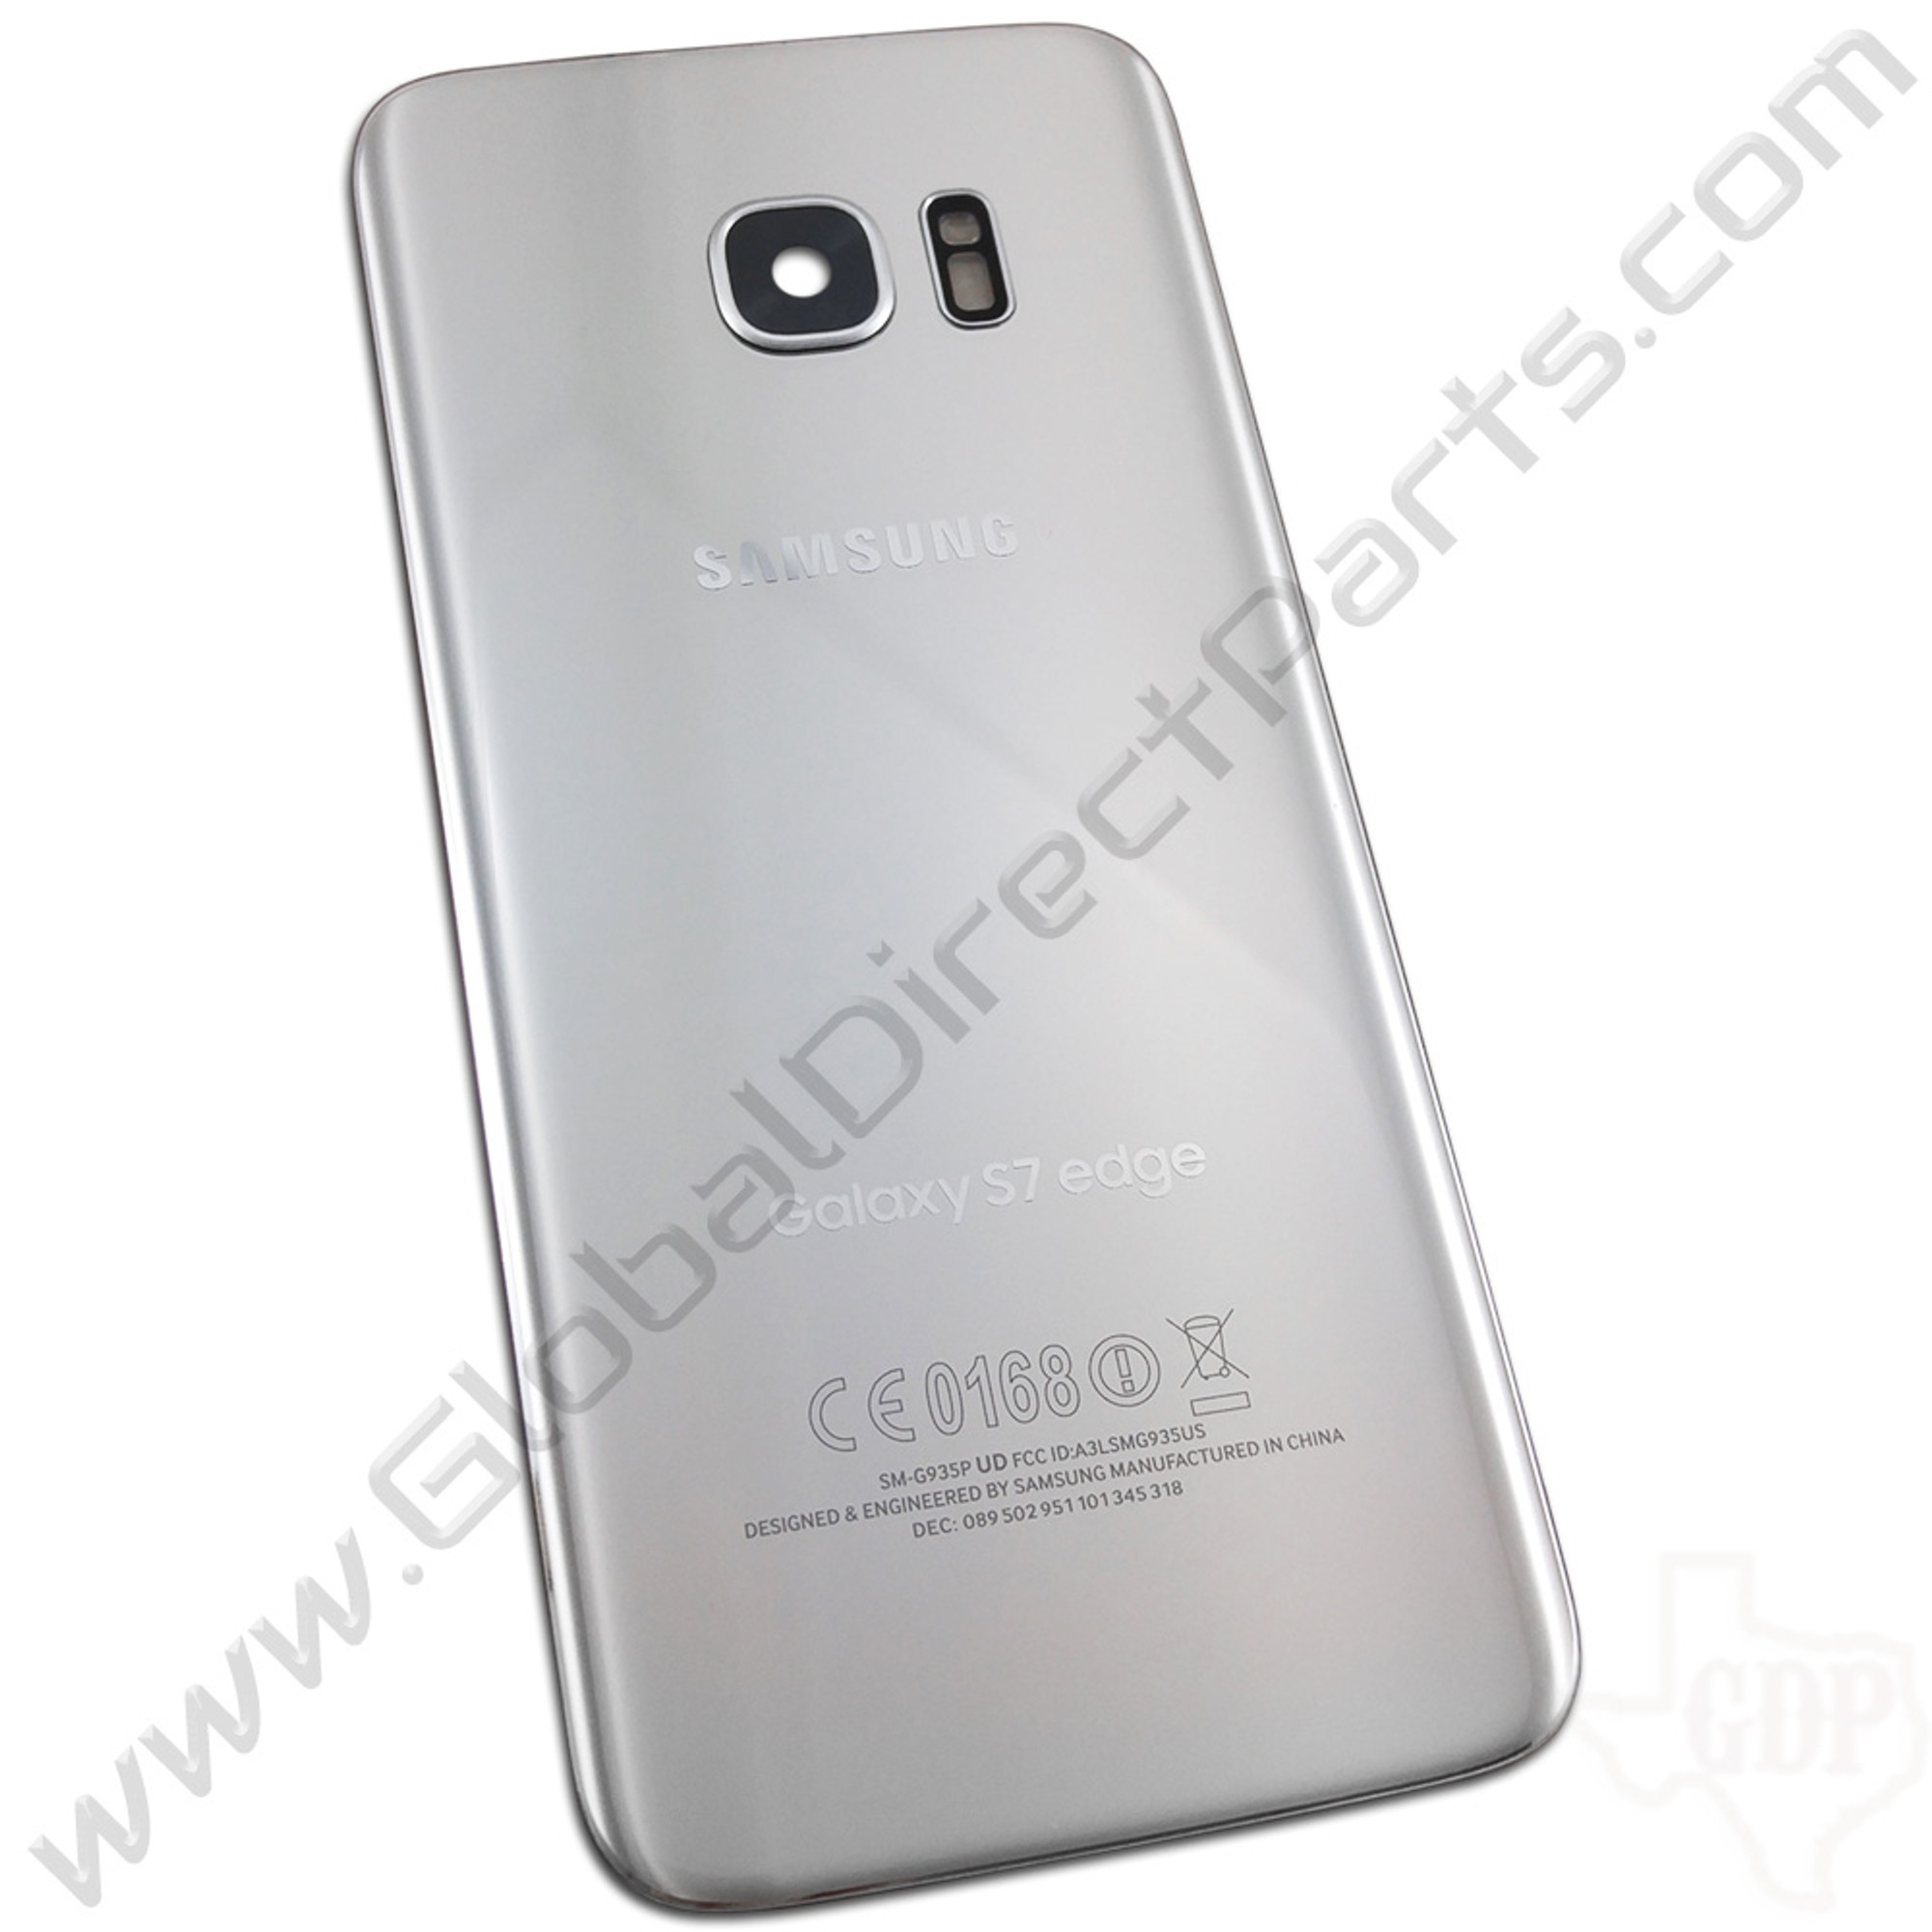 the best attitude 640a4 4ad87 OEM Samsung Galaxy S7 Edge G935T, G935P, G935R Battery Cover - Silver